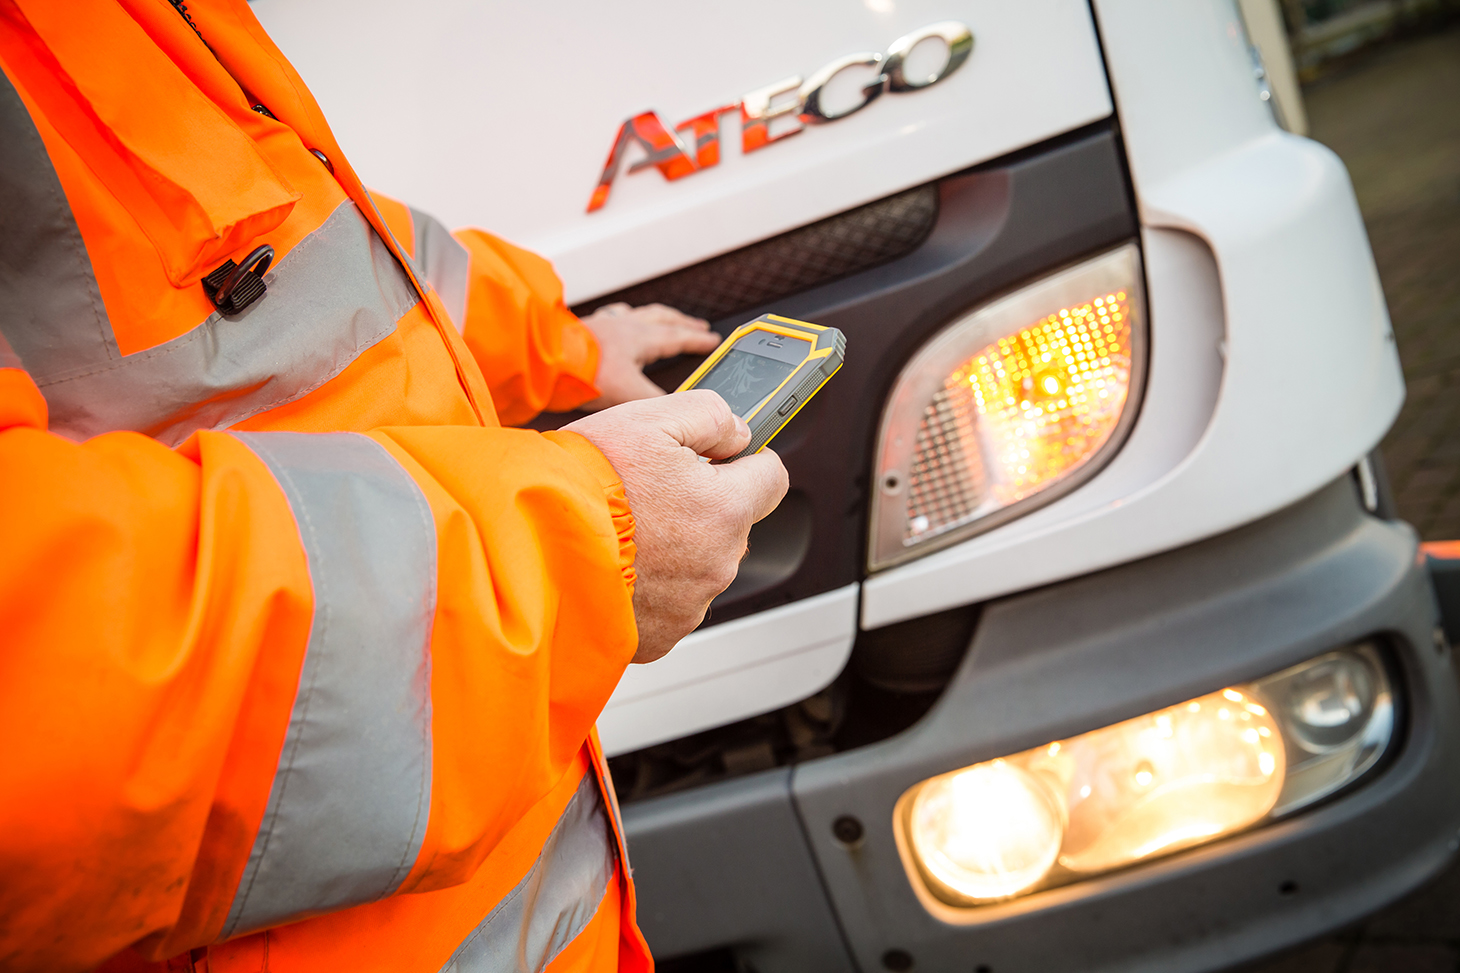 Helping fleet managers with vehicle maintenance